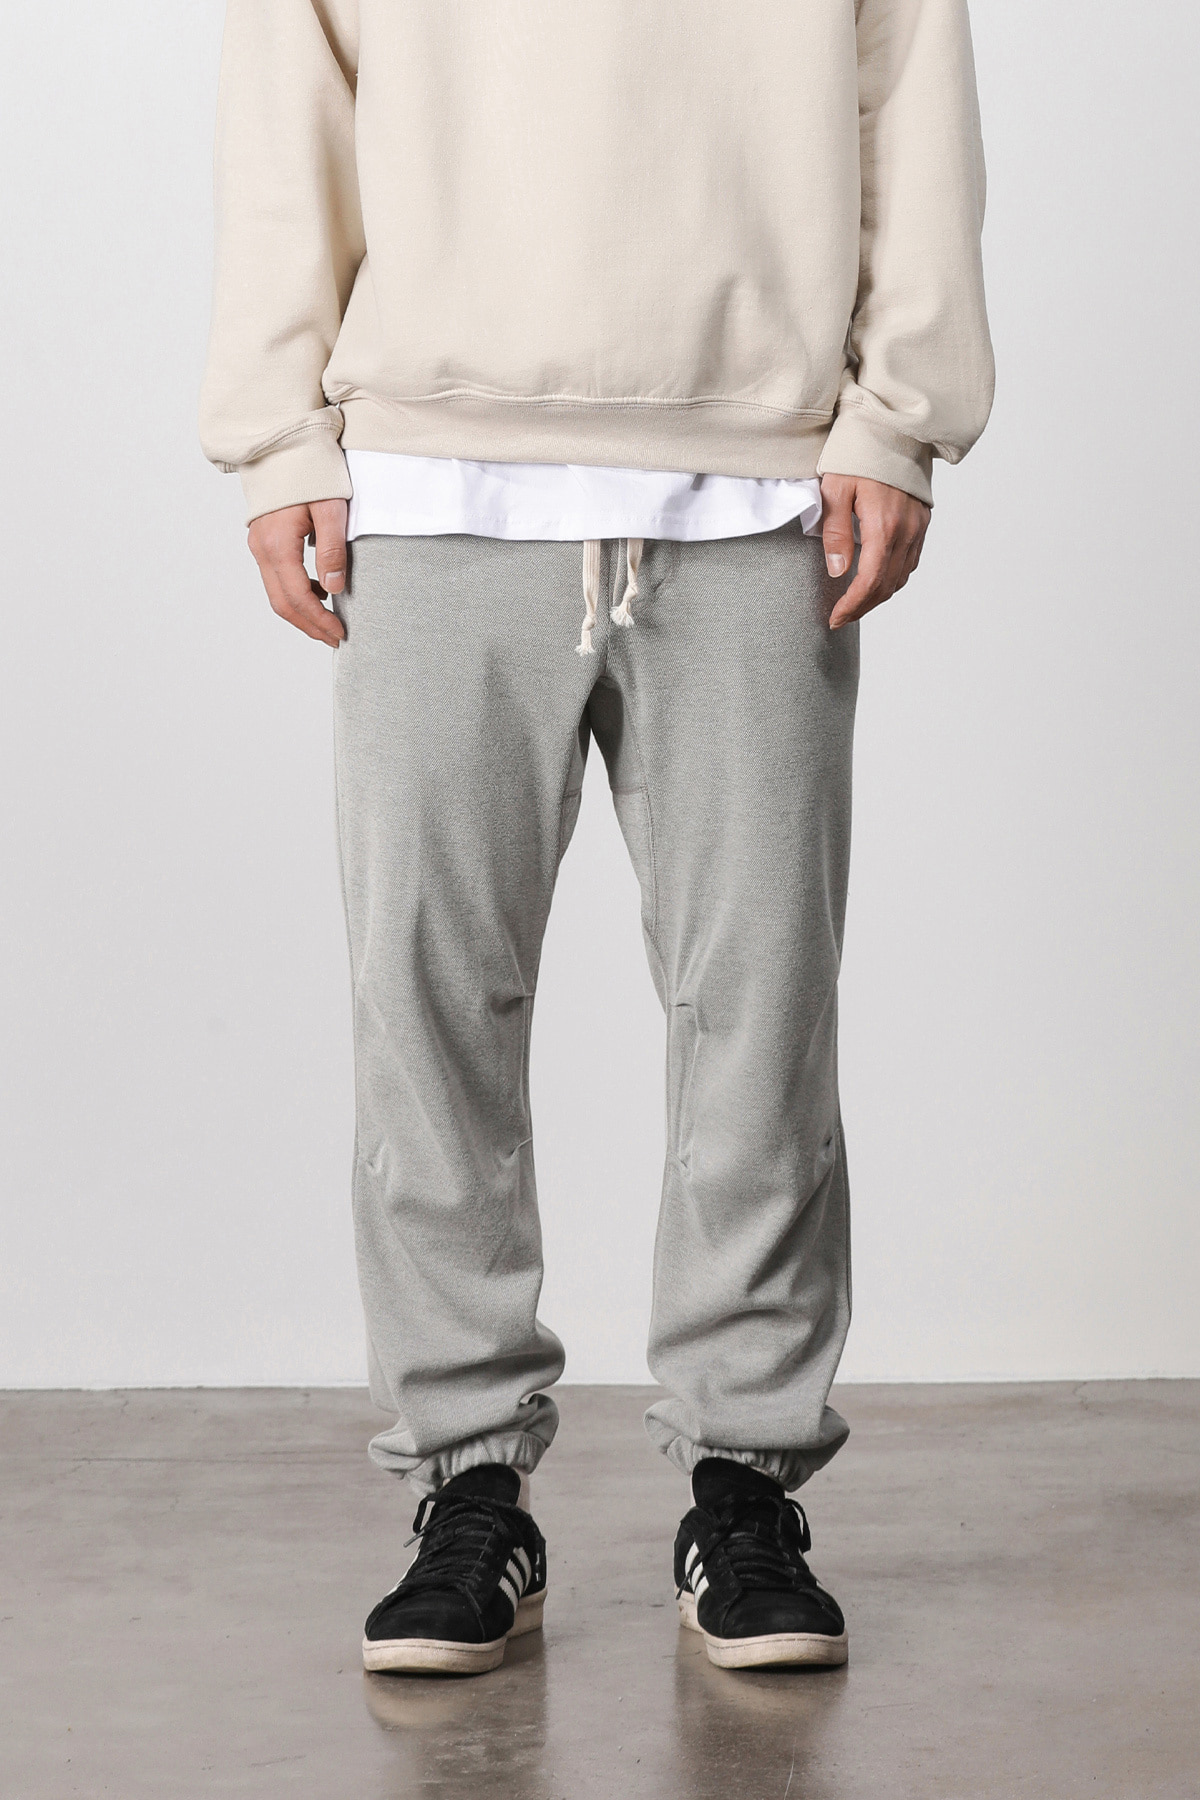 페이탈리즘 #jp14 Melange training jogger pants (gray)